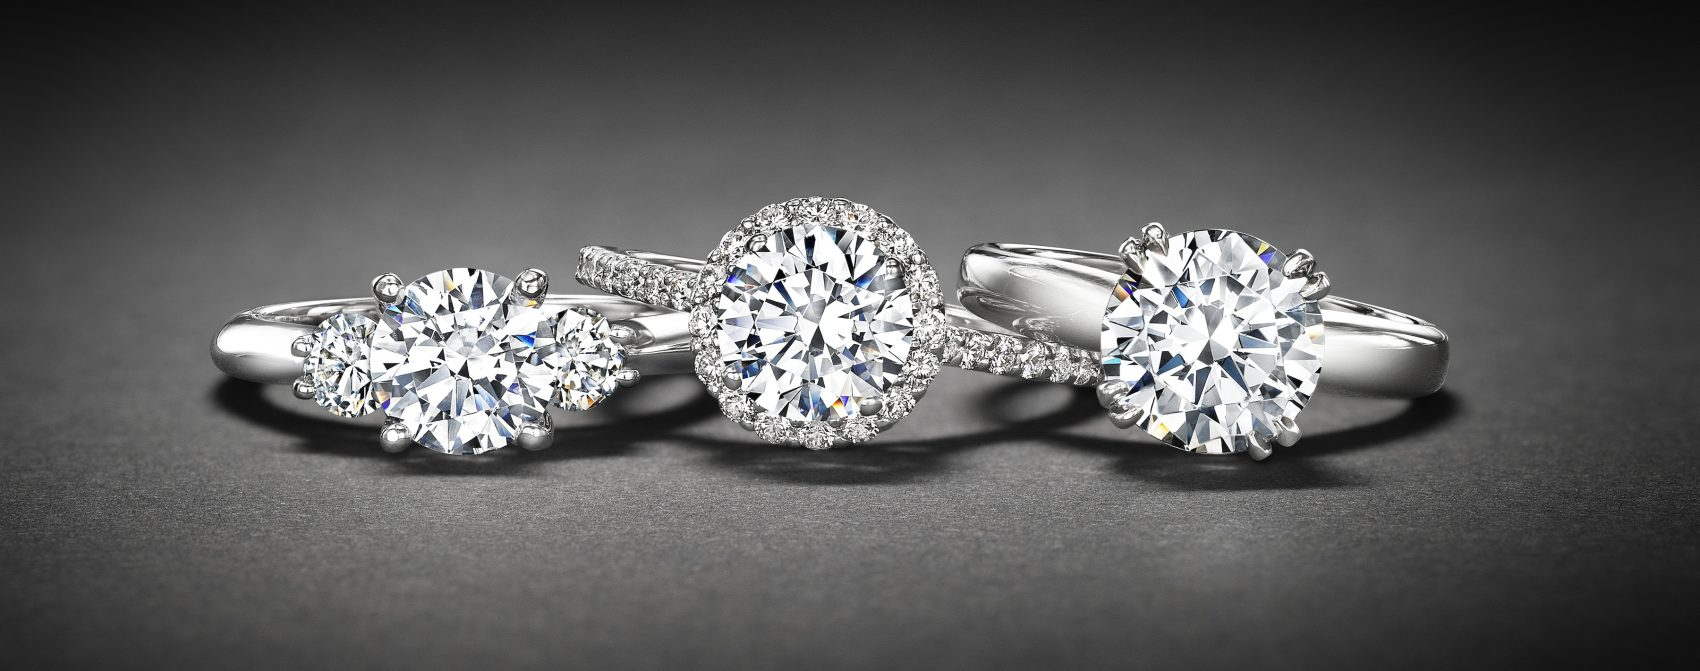 Where To Sell A Diamond Ring In Atlanta